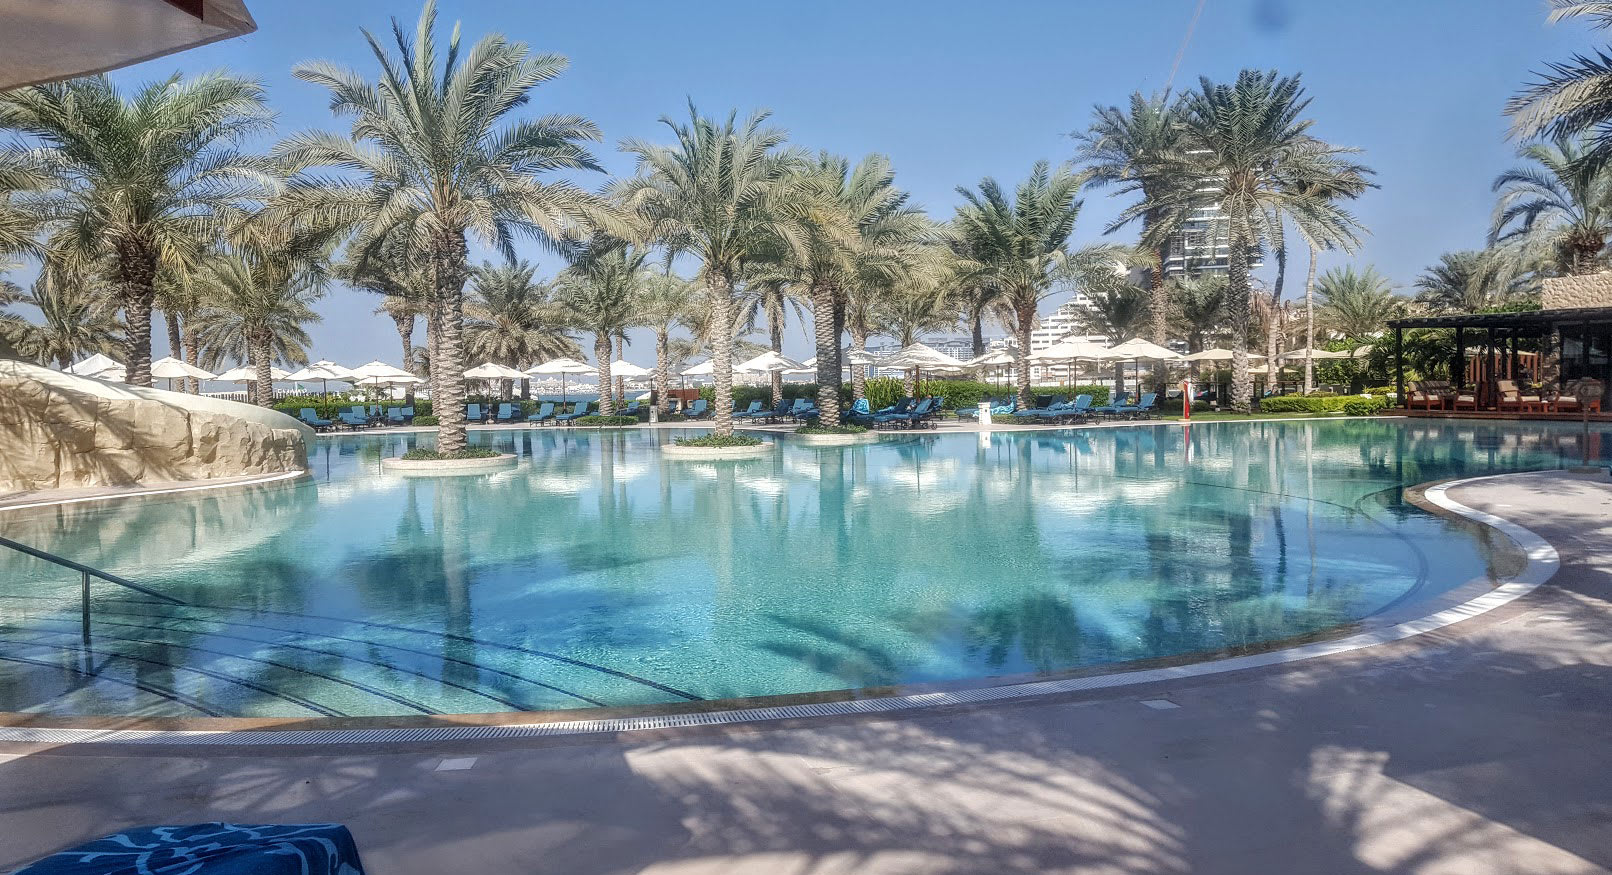 Dubai swimming pool with palm trees